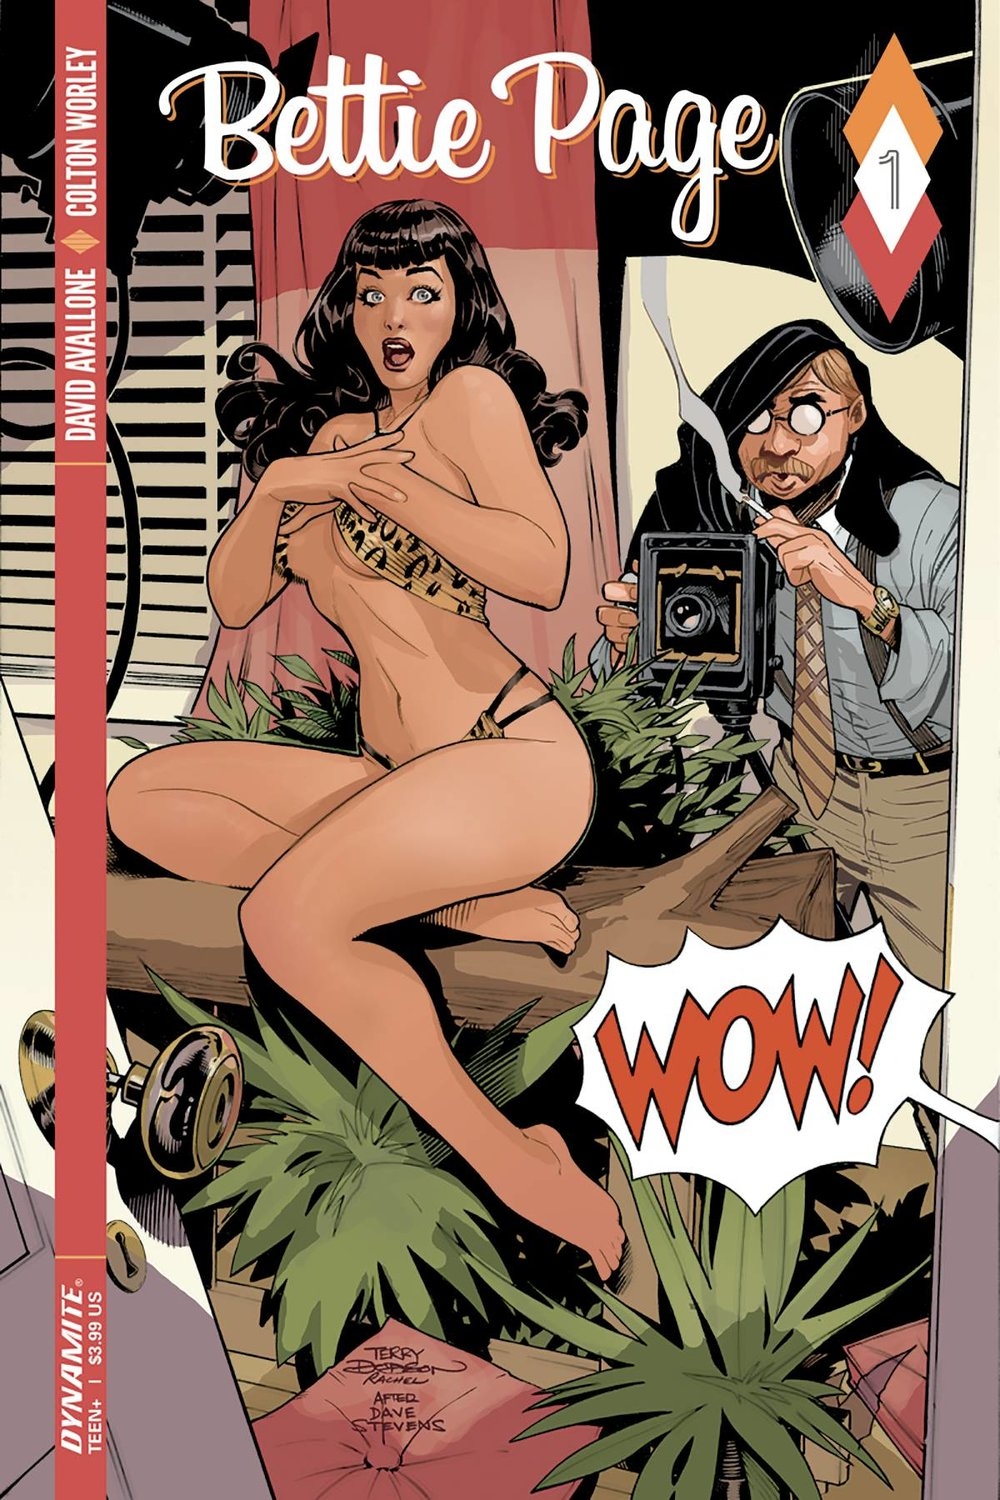 BETTIE PAGE #1 - DYNAMITE ENTERTAINMENTWritten by David AvalloneArt by Colton WorleyShe's more modest than Ms. Blaise, but peels more than Ms. Emma. She out-vamps Vampirella, but she's sweeter than Honey West. She put the mod in model, and the bangs in bang-bang. Now the world can know the truth:  her classified adventures back in 1951 Hollywood have been declassified.  Dynamite, David Avallone and Colton Worley are proud to present The Secret Diary of Bettie Page, in handy comic book form.